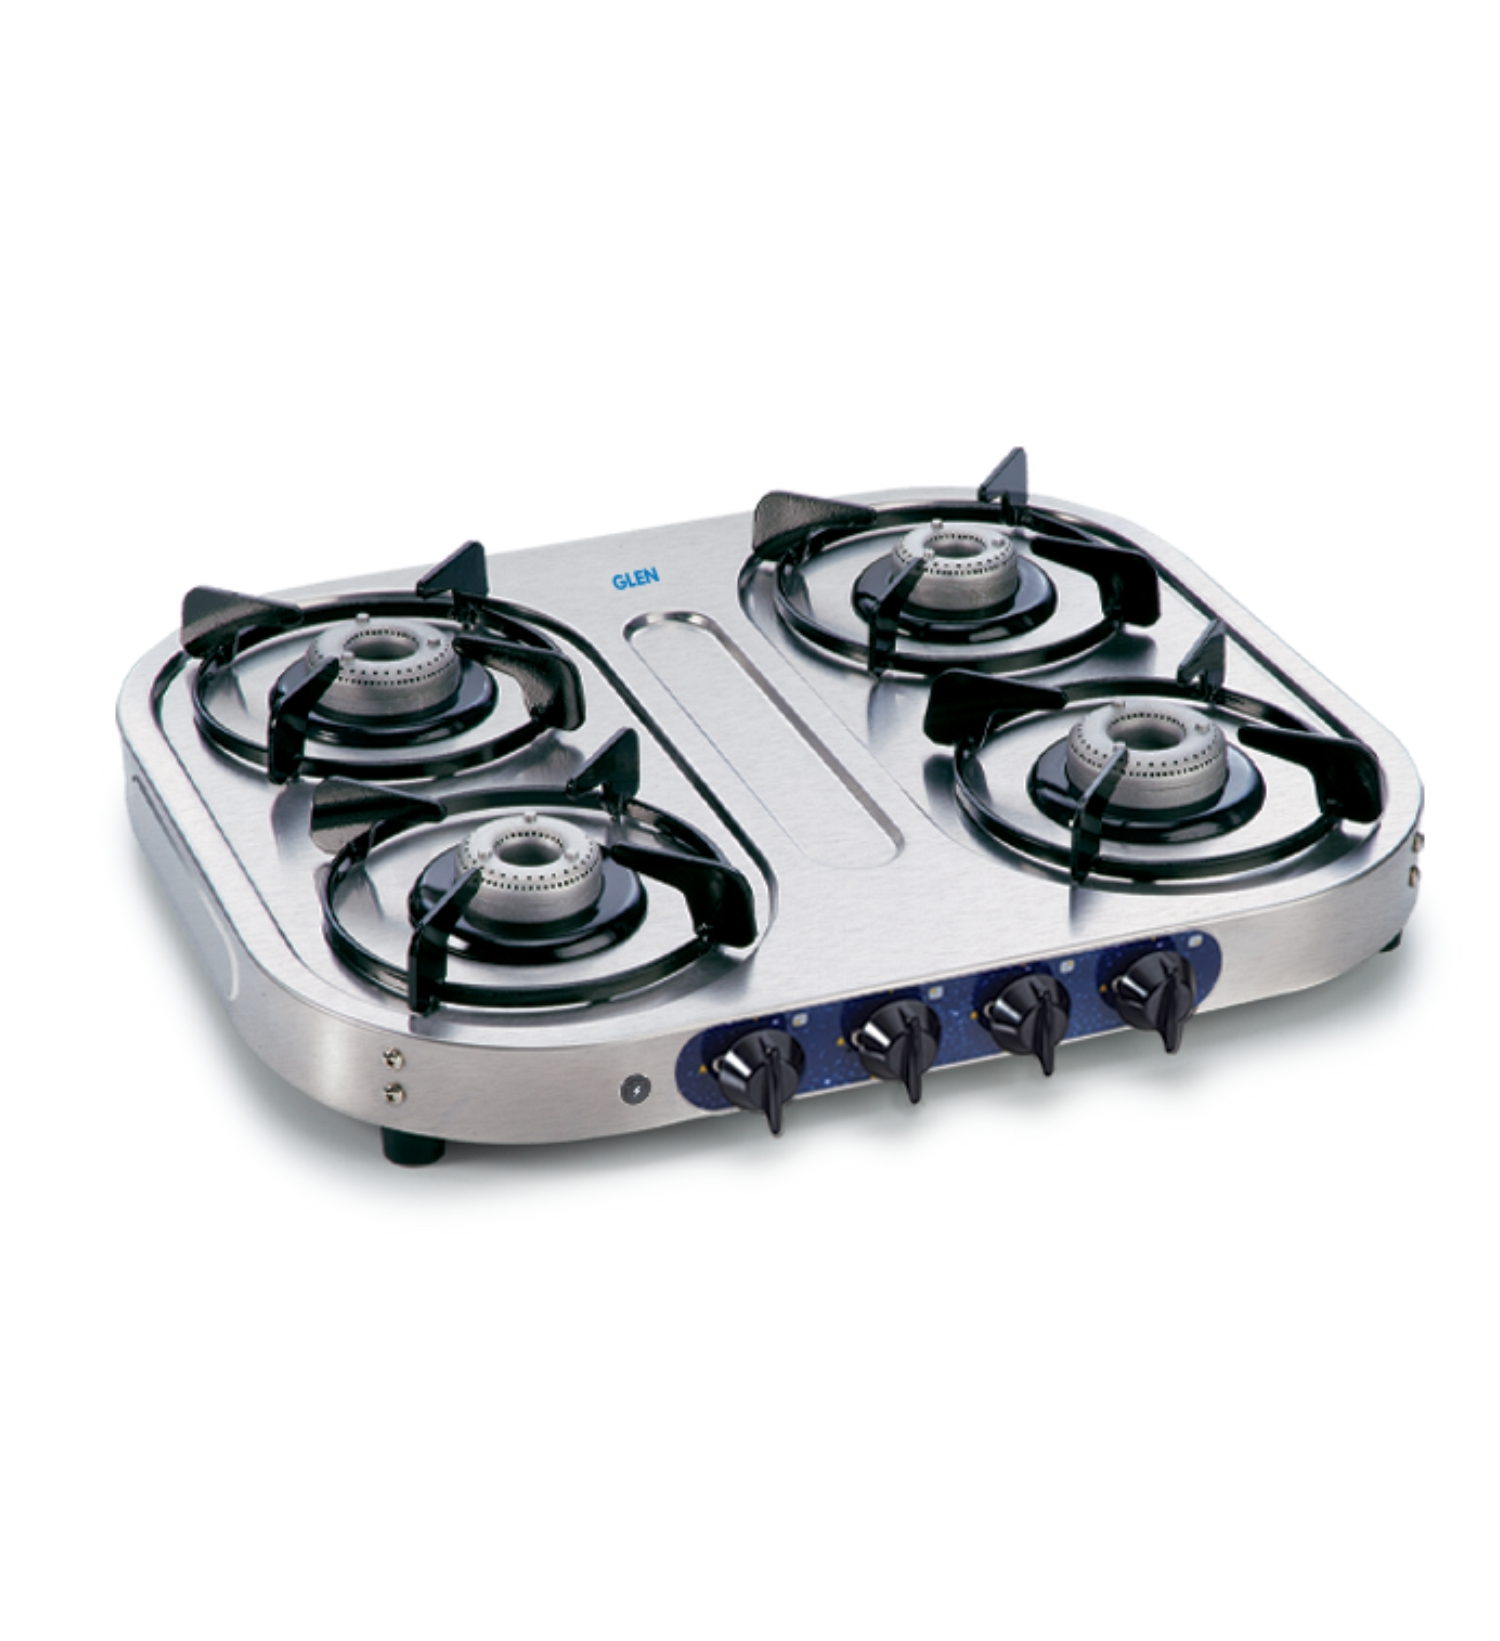 Stainless Steel Cooktops/GL 1044 SSAL AI